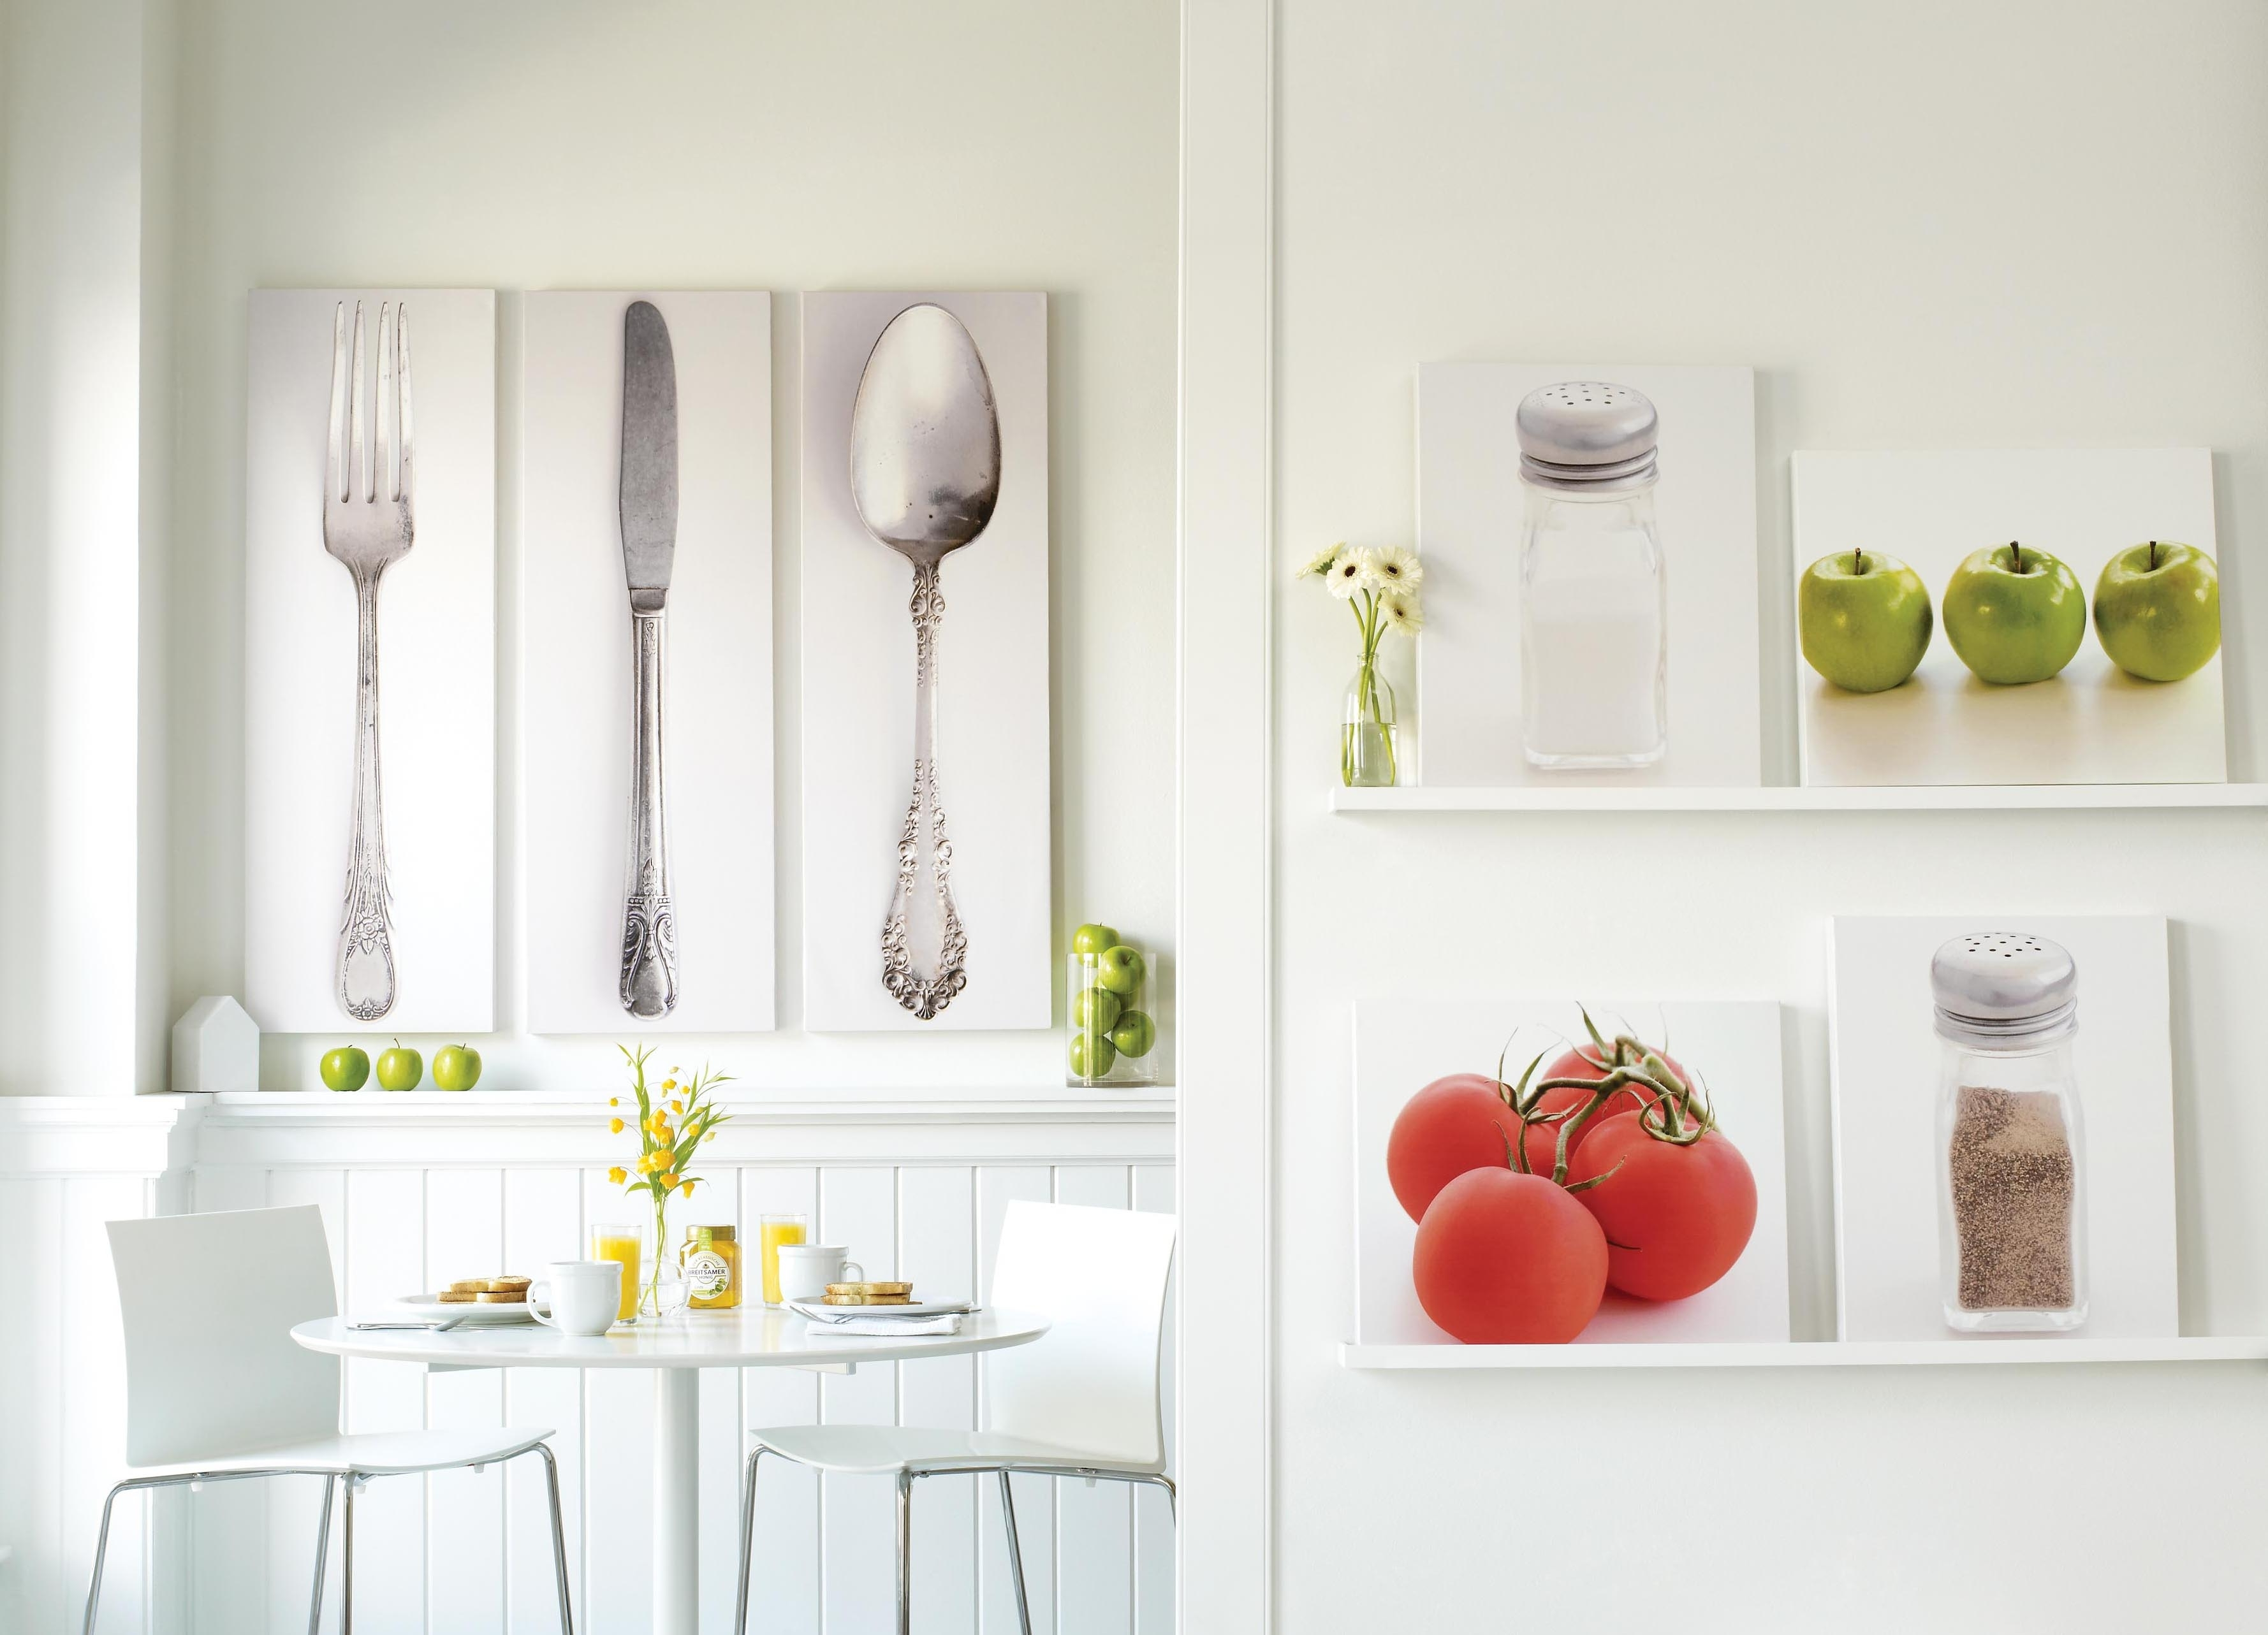 Wondrous Knife,spoon And Fork Pictures As Kitchen Wall Decor In Pertaining To 2018 Modern Wall Art Decors (View 20 of 20)